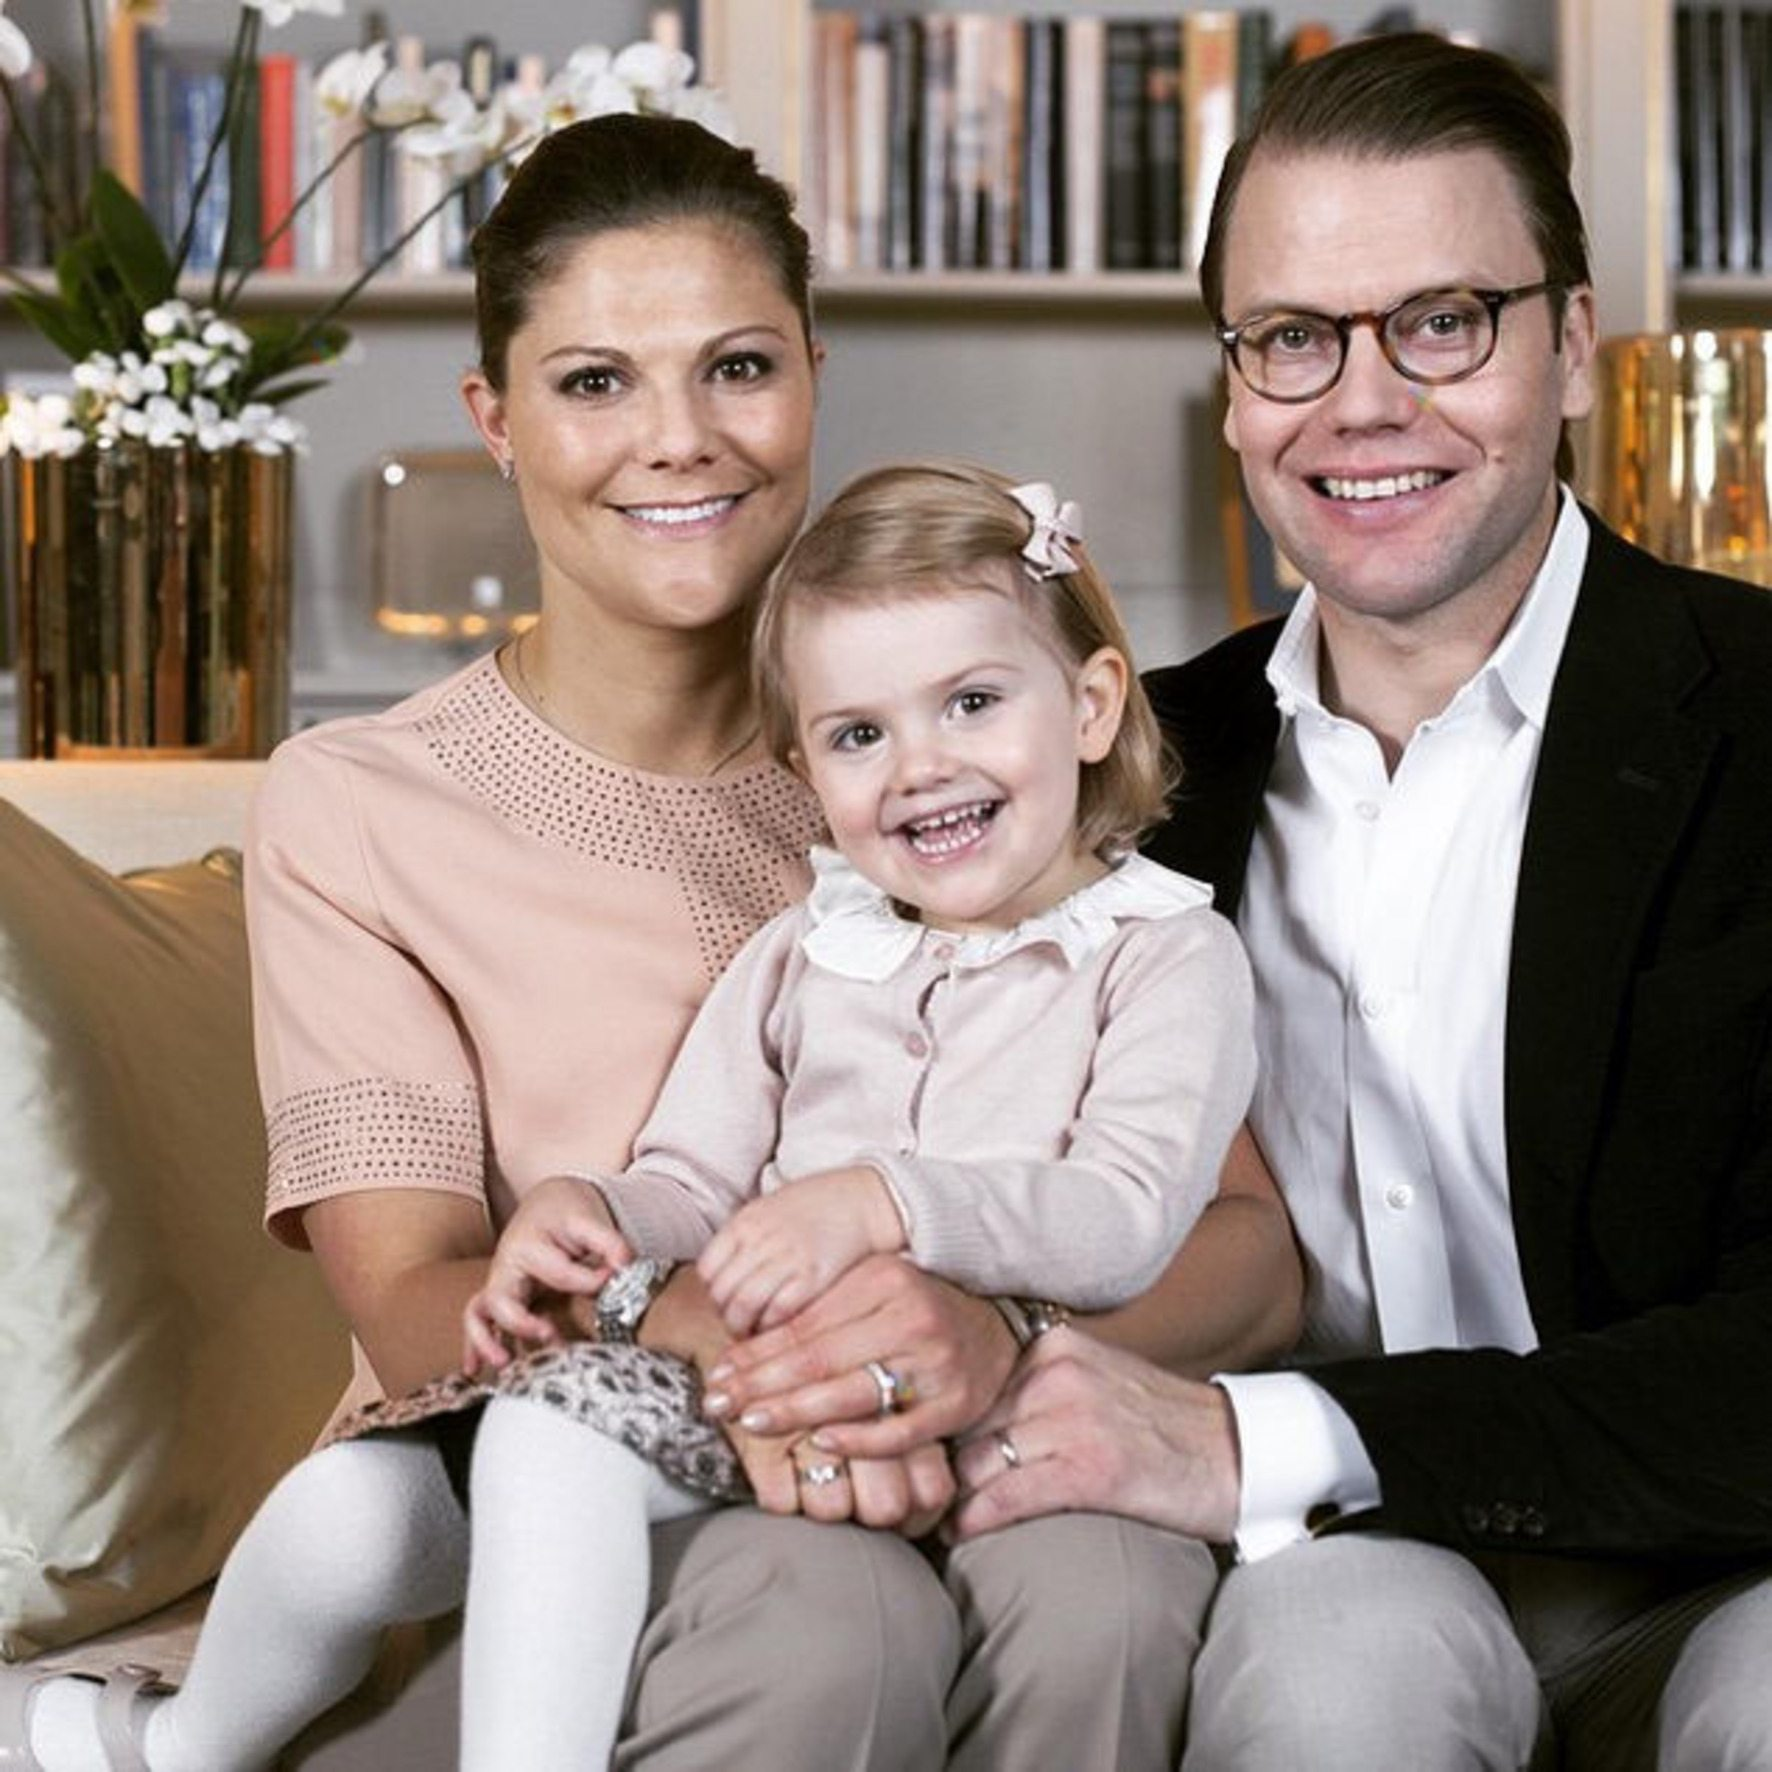 "The Swedish Royals ""Their Royal Highnesses Crown Princess Victoria and Prince Daniel are happy to announce that The Crown Princess is expecting their second child. The birth is expected to take place in March of 2016."" Supplied by Instagram.com/face to face"